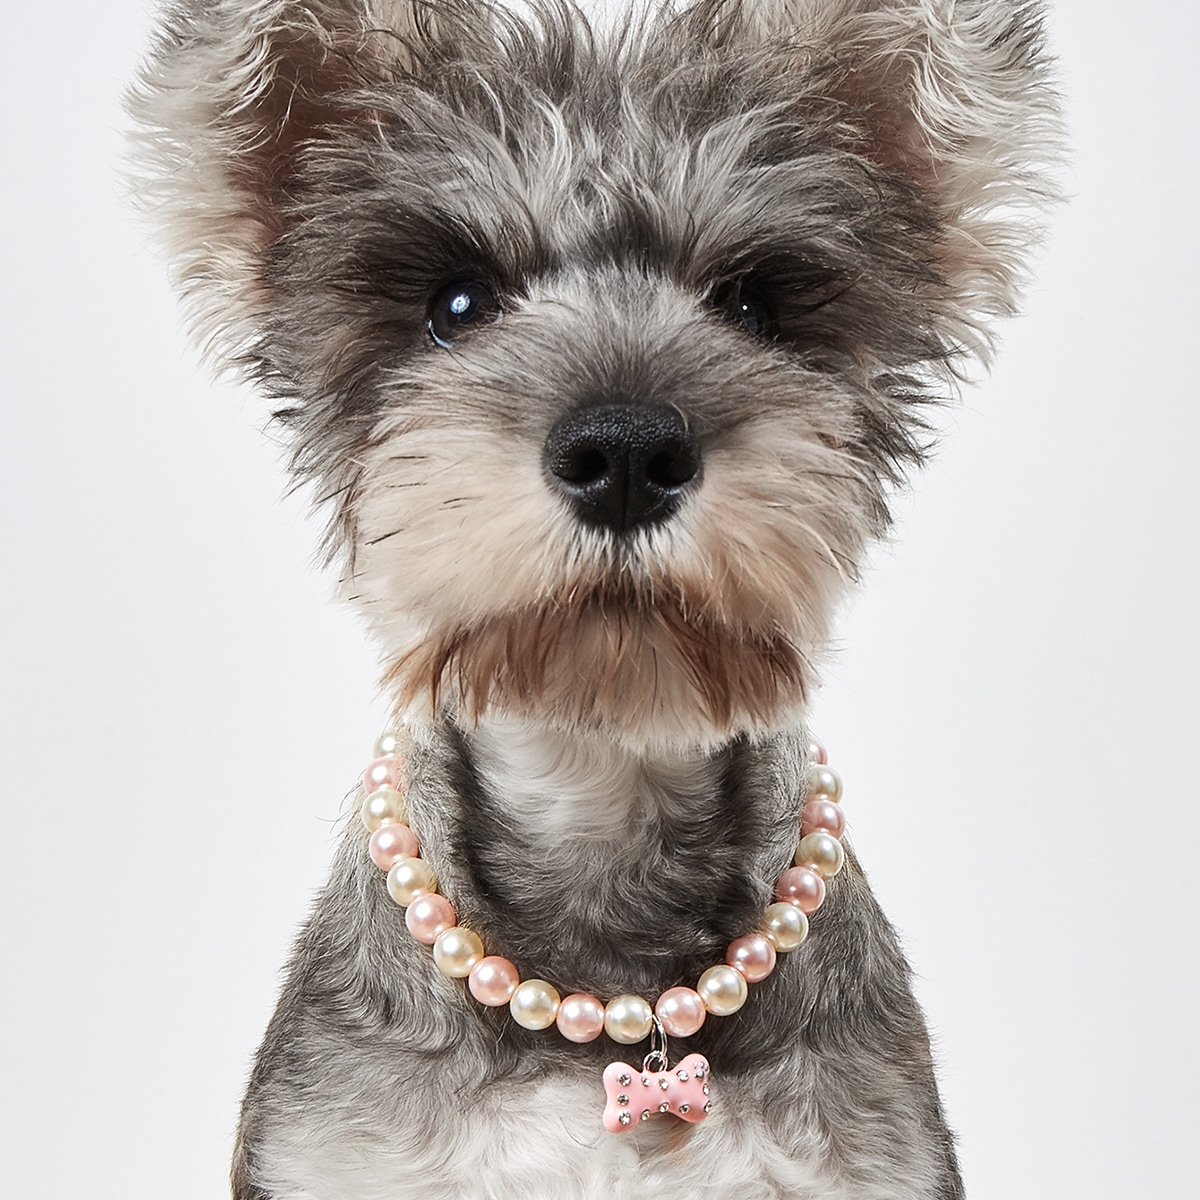 Bone Pendant Faux Pearl Pet Necklace, SHEIN  - buy with discount